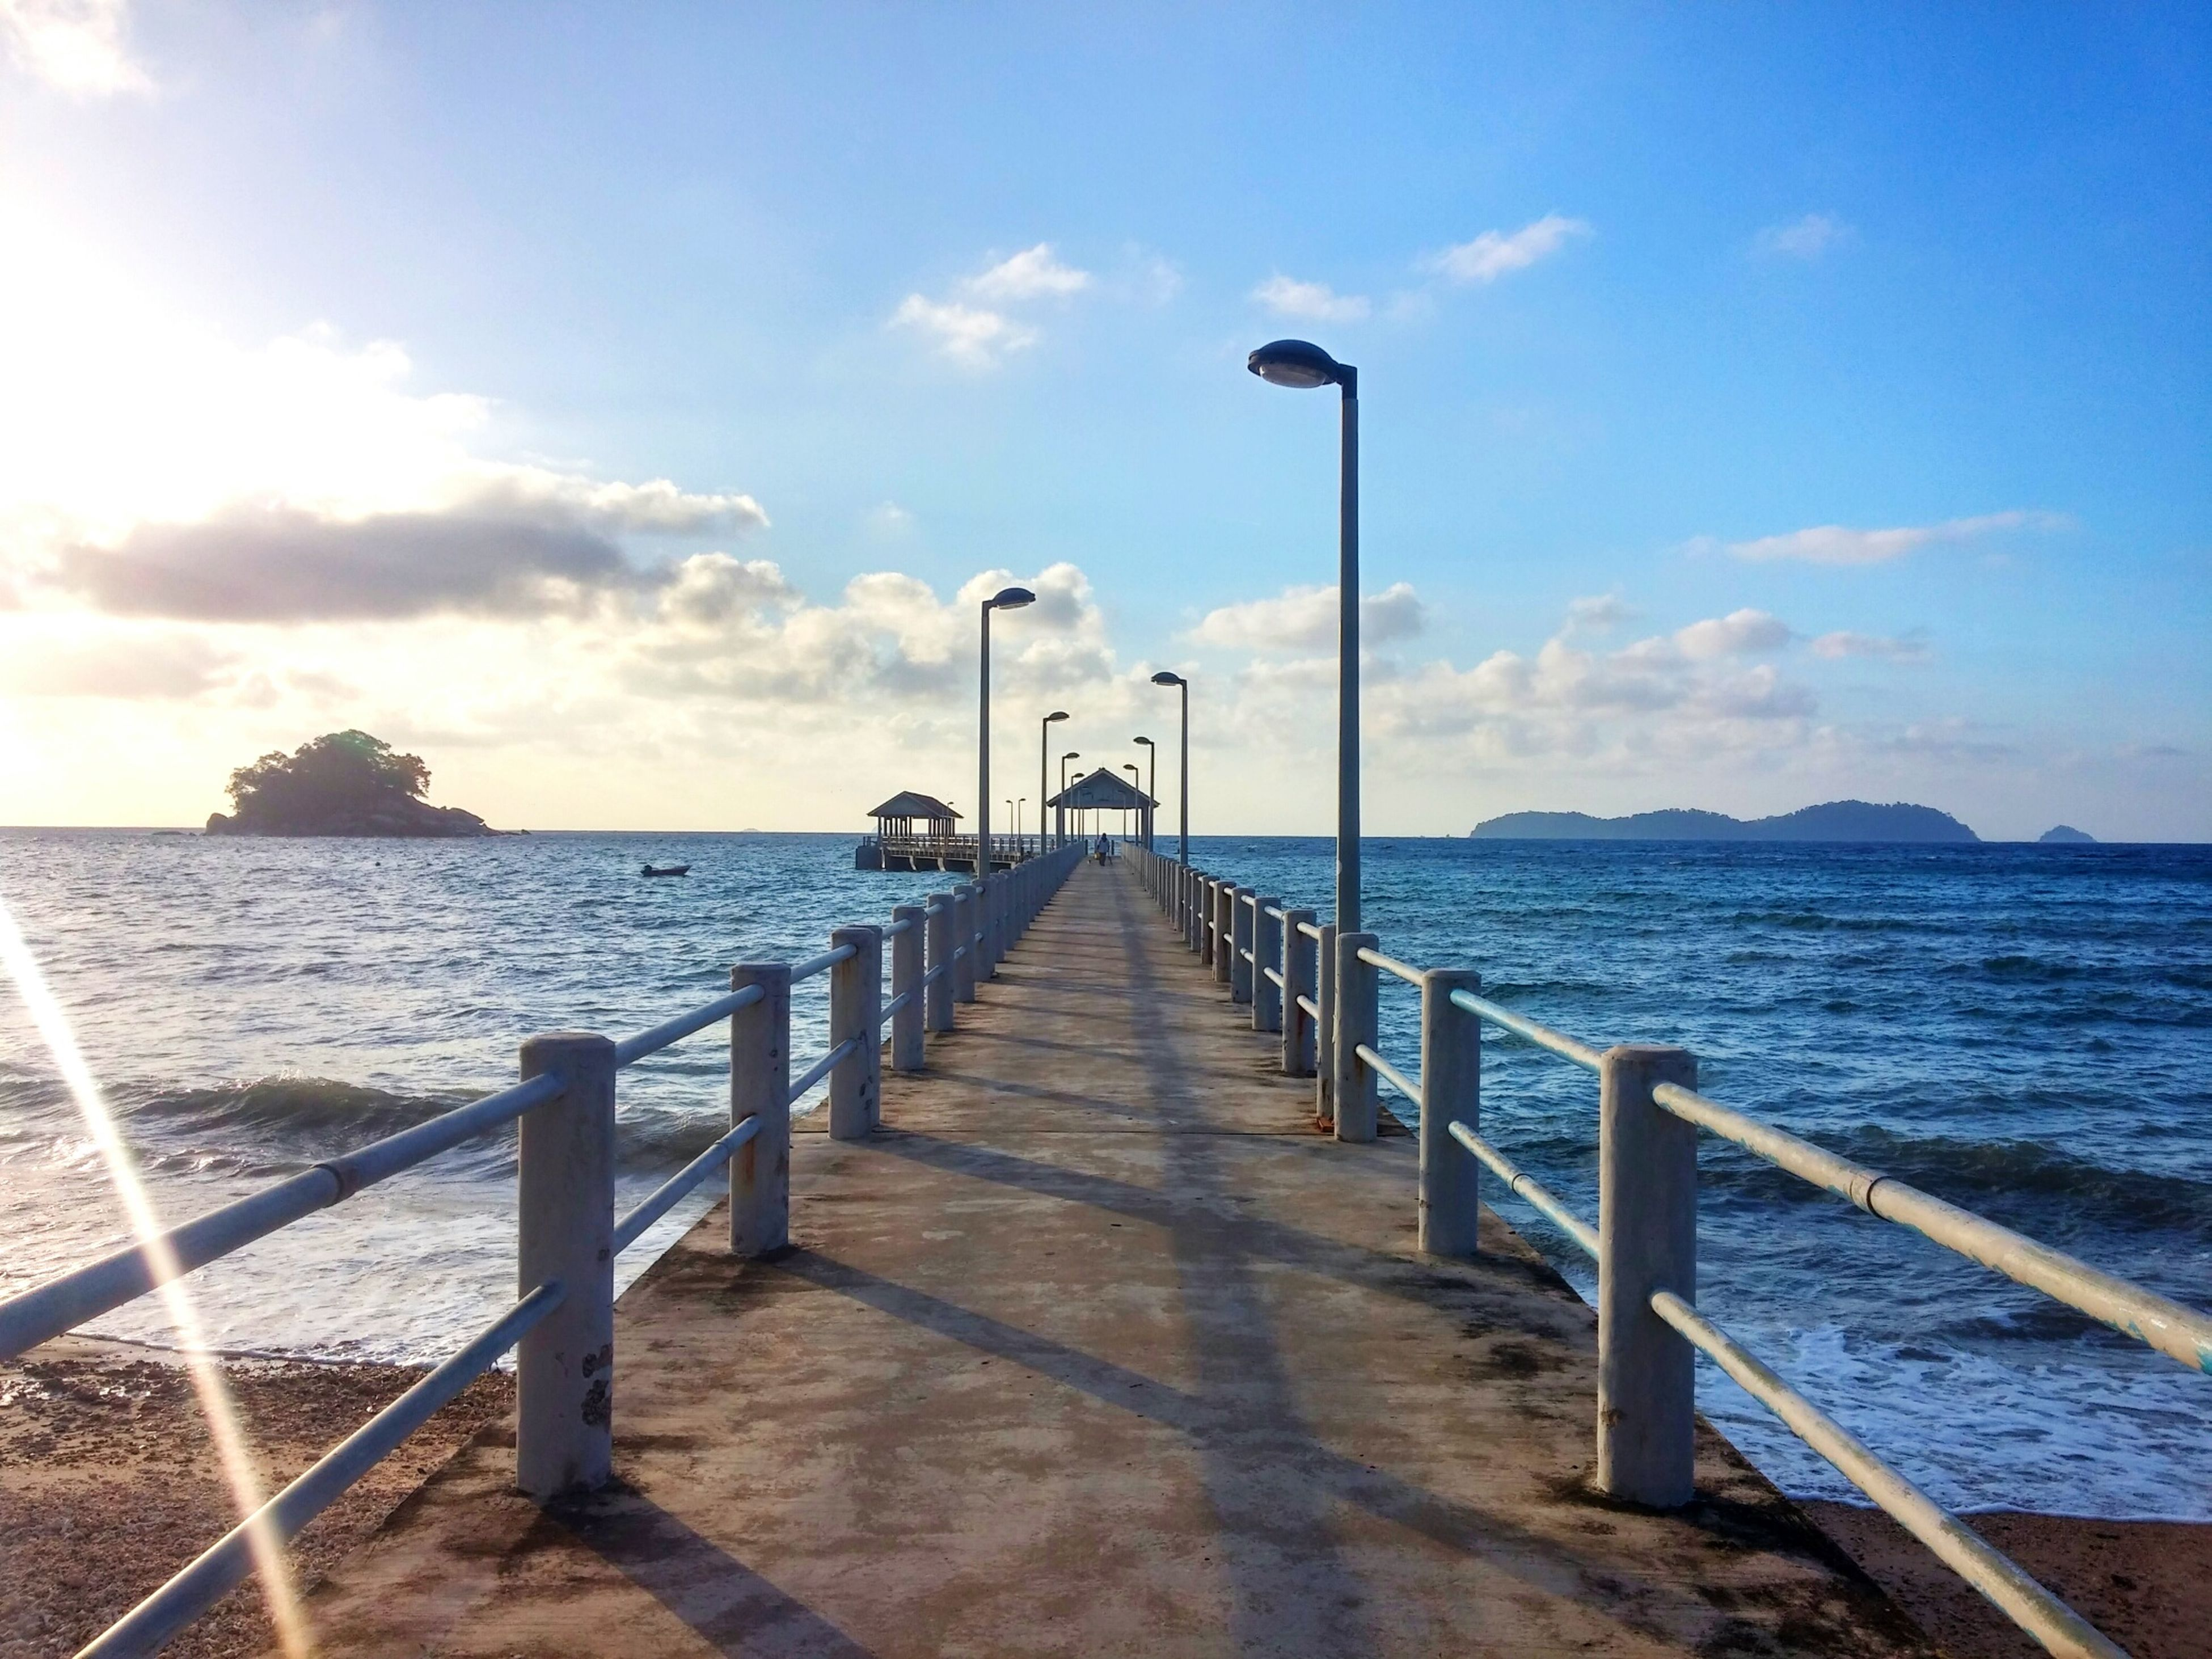 sea, water, the way forward, railing, sky, horizon over water, pier, tranquil scene, tranquility, scenics, street light, beauty in nature, diminishing perspective, nature, blue, jetty, idyllic, cloud - sky, vanishing point, long